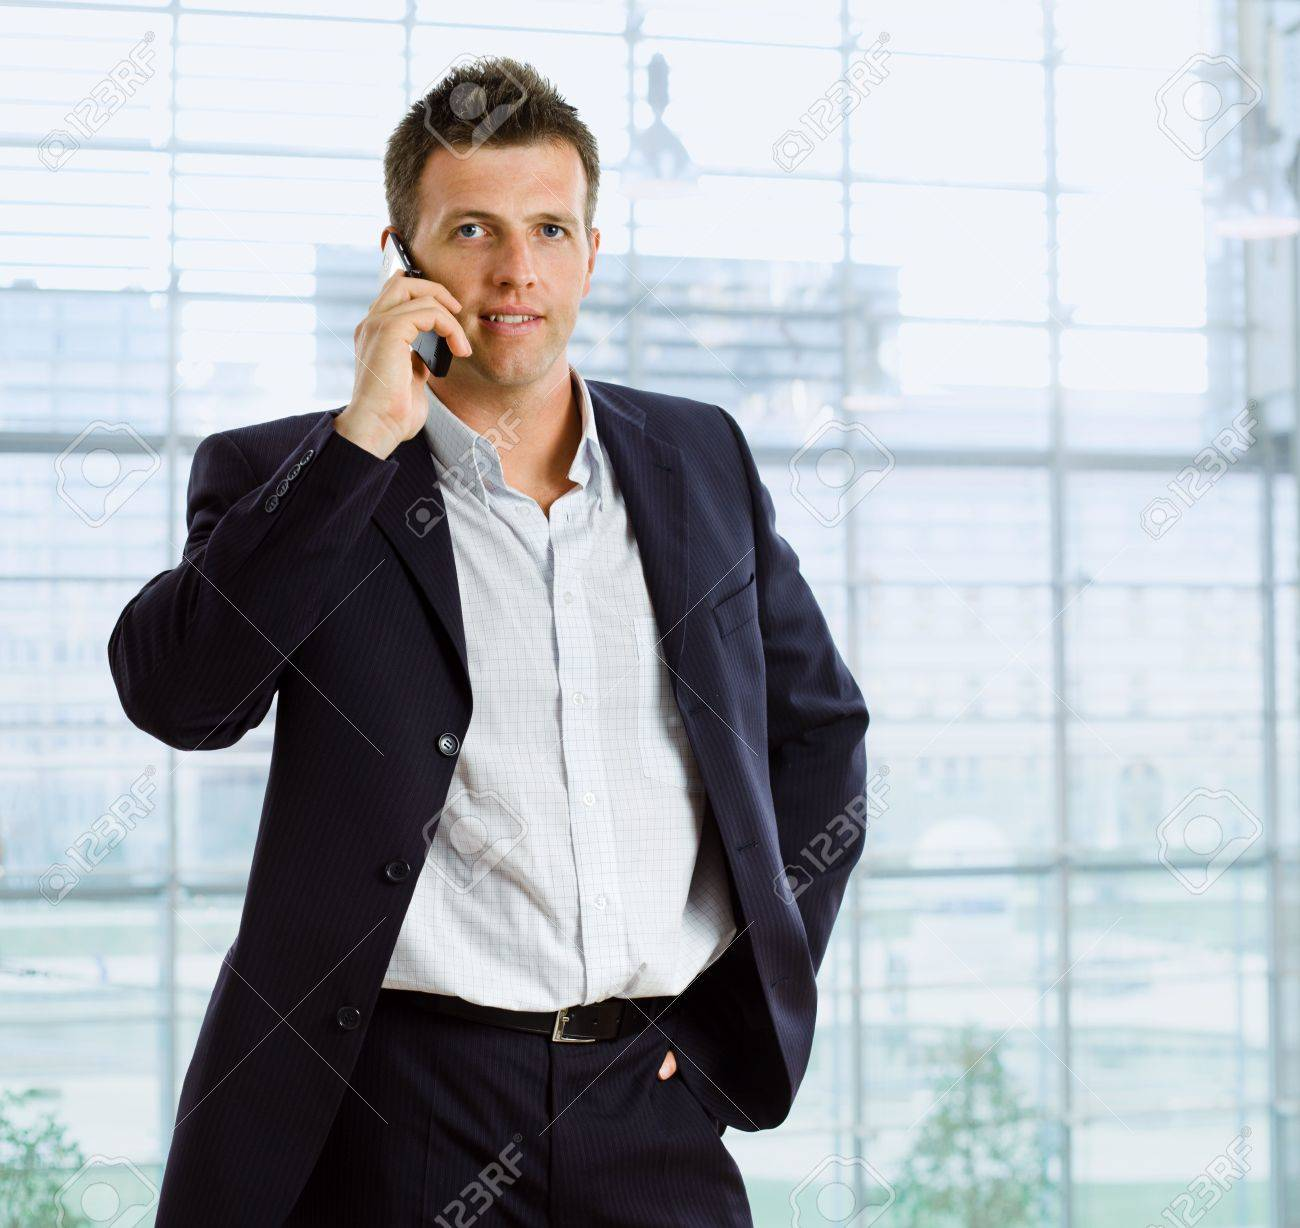 Businessman talking on mobile phone in front of office window. Stock Photo - 5035342